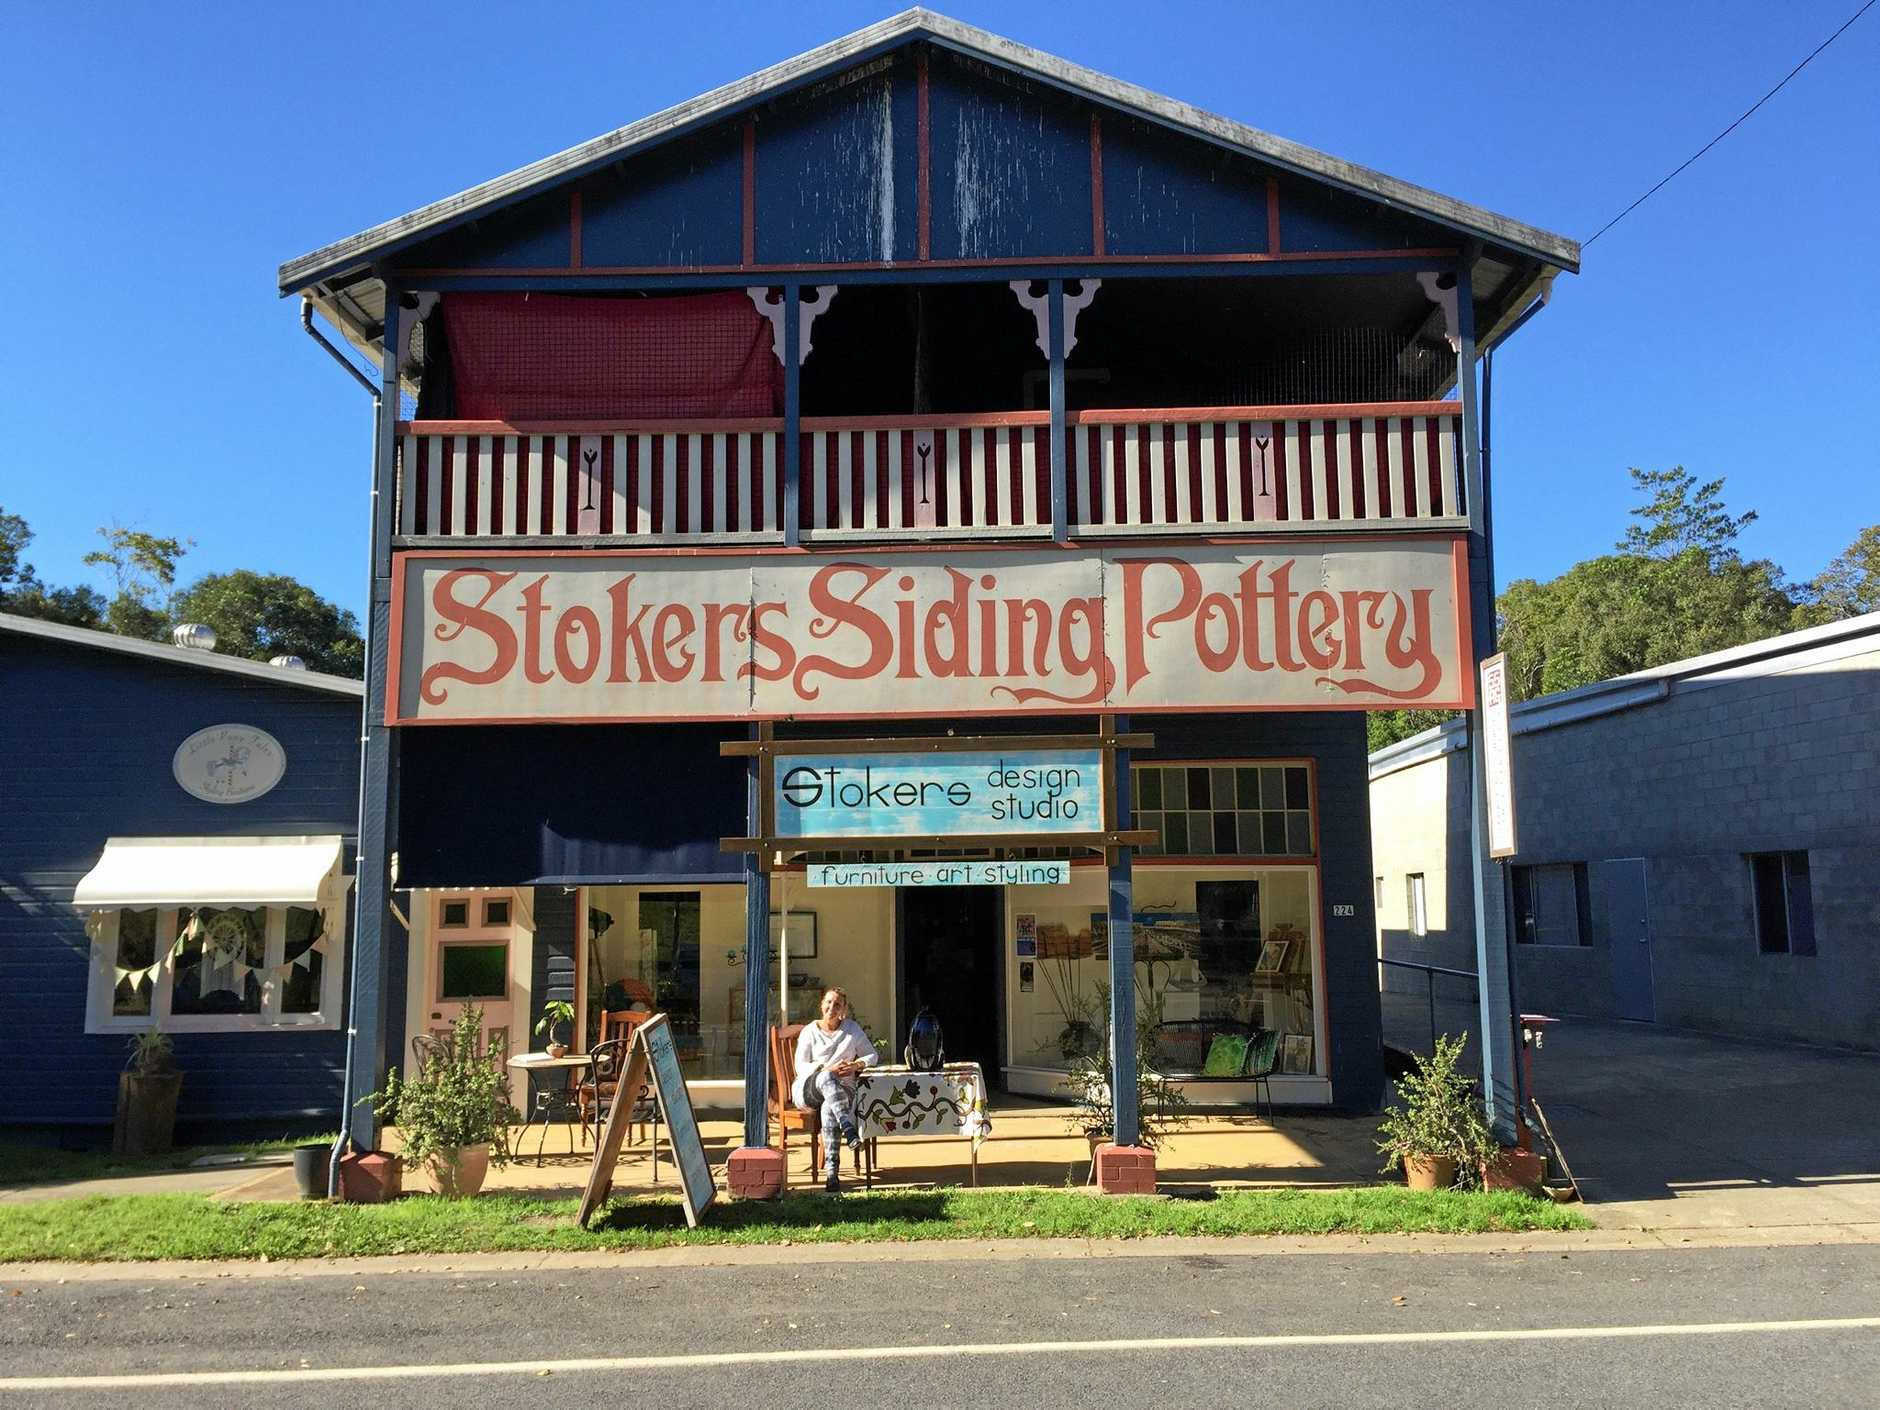 Lisa Young has Stokers Siding Design Studio, just across the road from the old railway station.